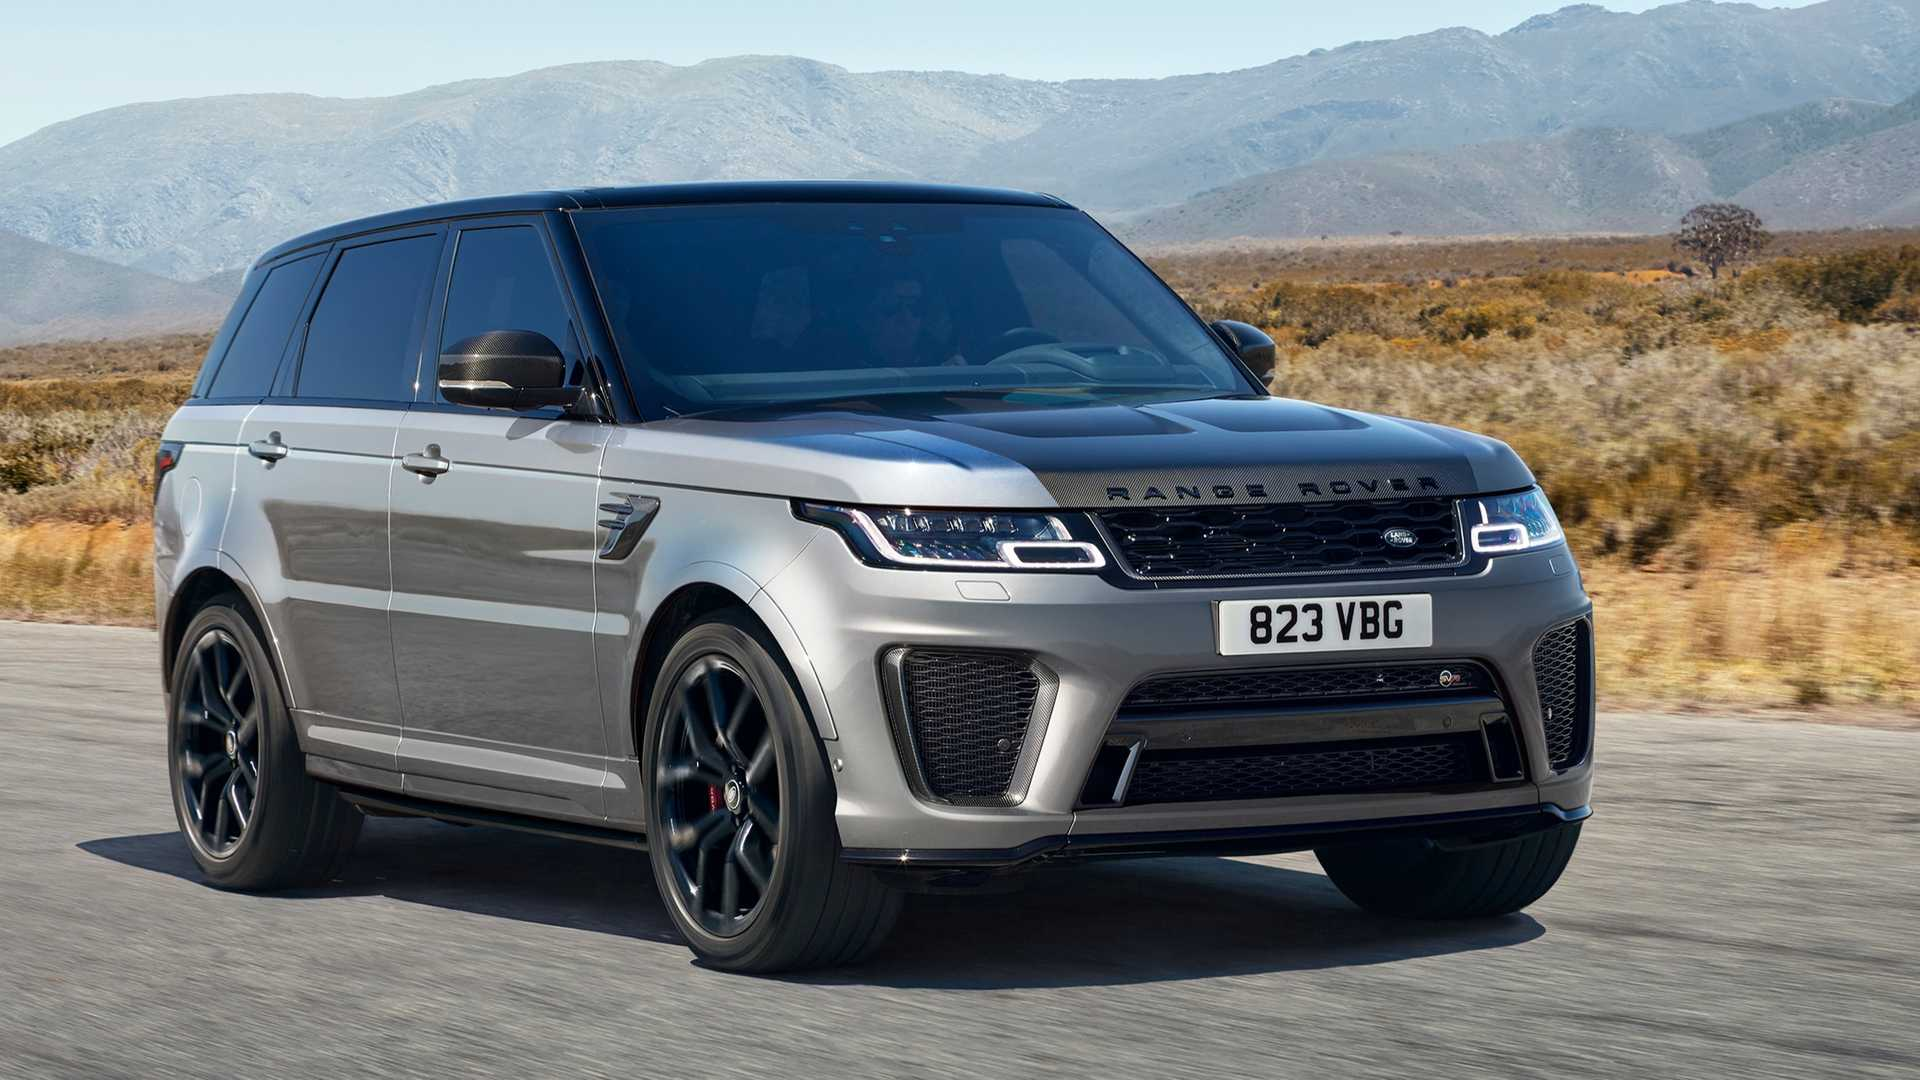 Range Rover Sport Gets Mild Hybrid Power And New Special Editions